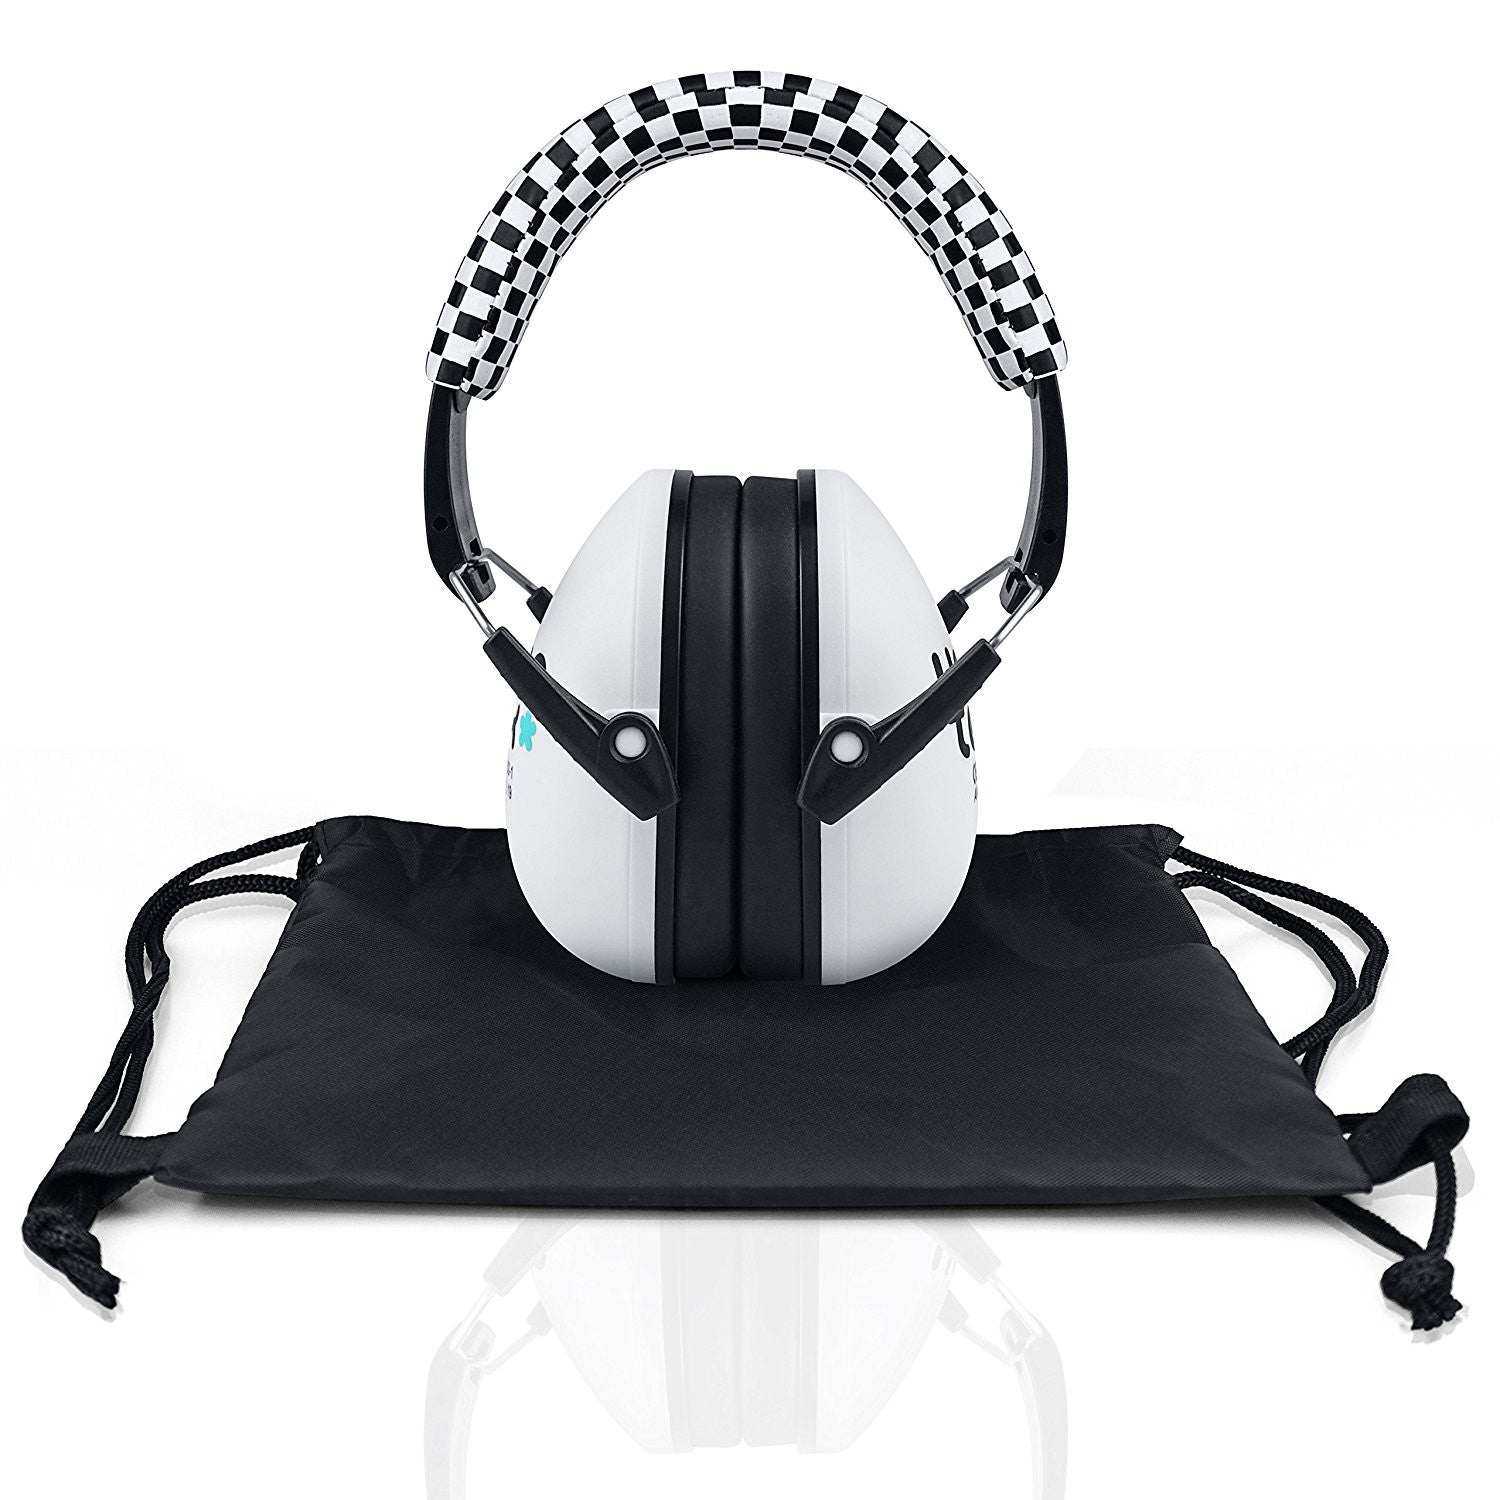 Sporty White Senna Earmuffs Hearing Protection with Travel Bag